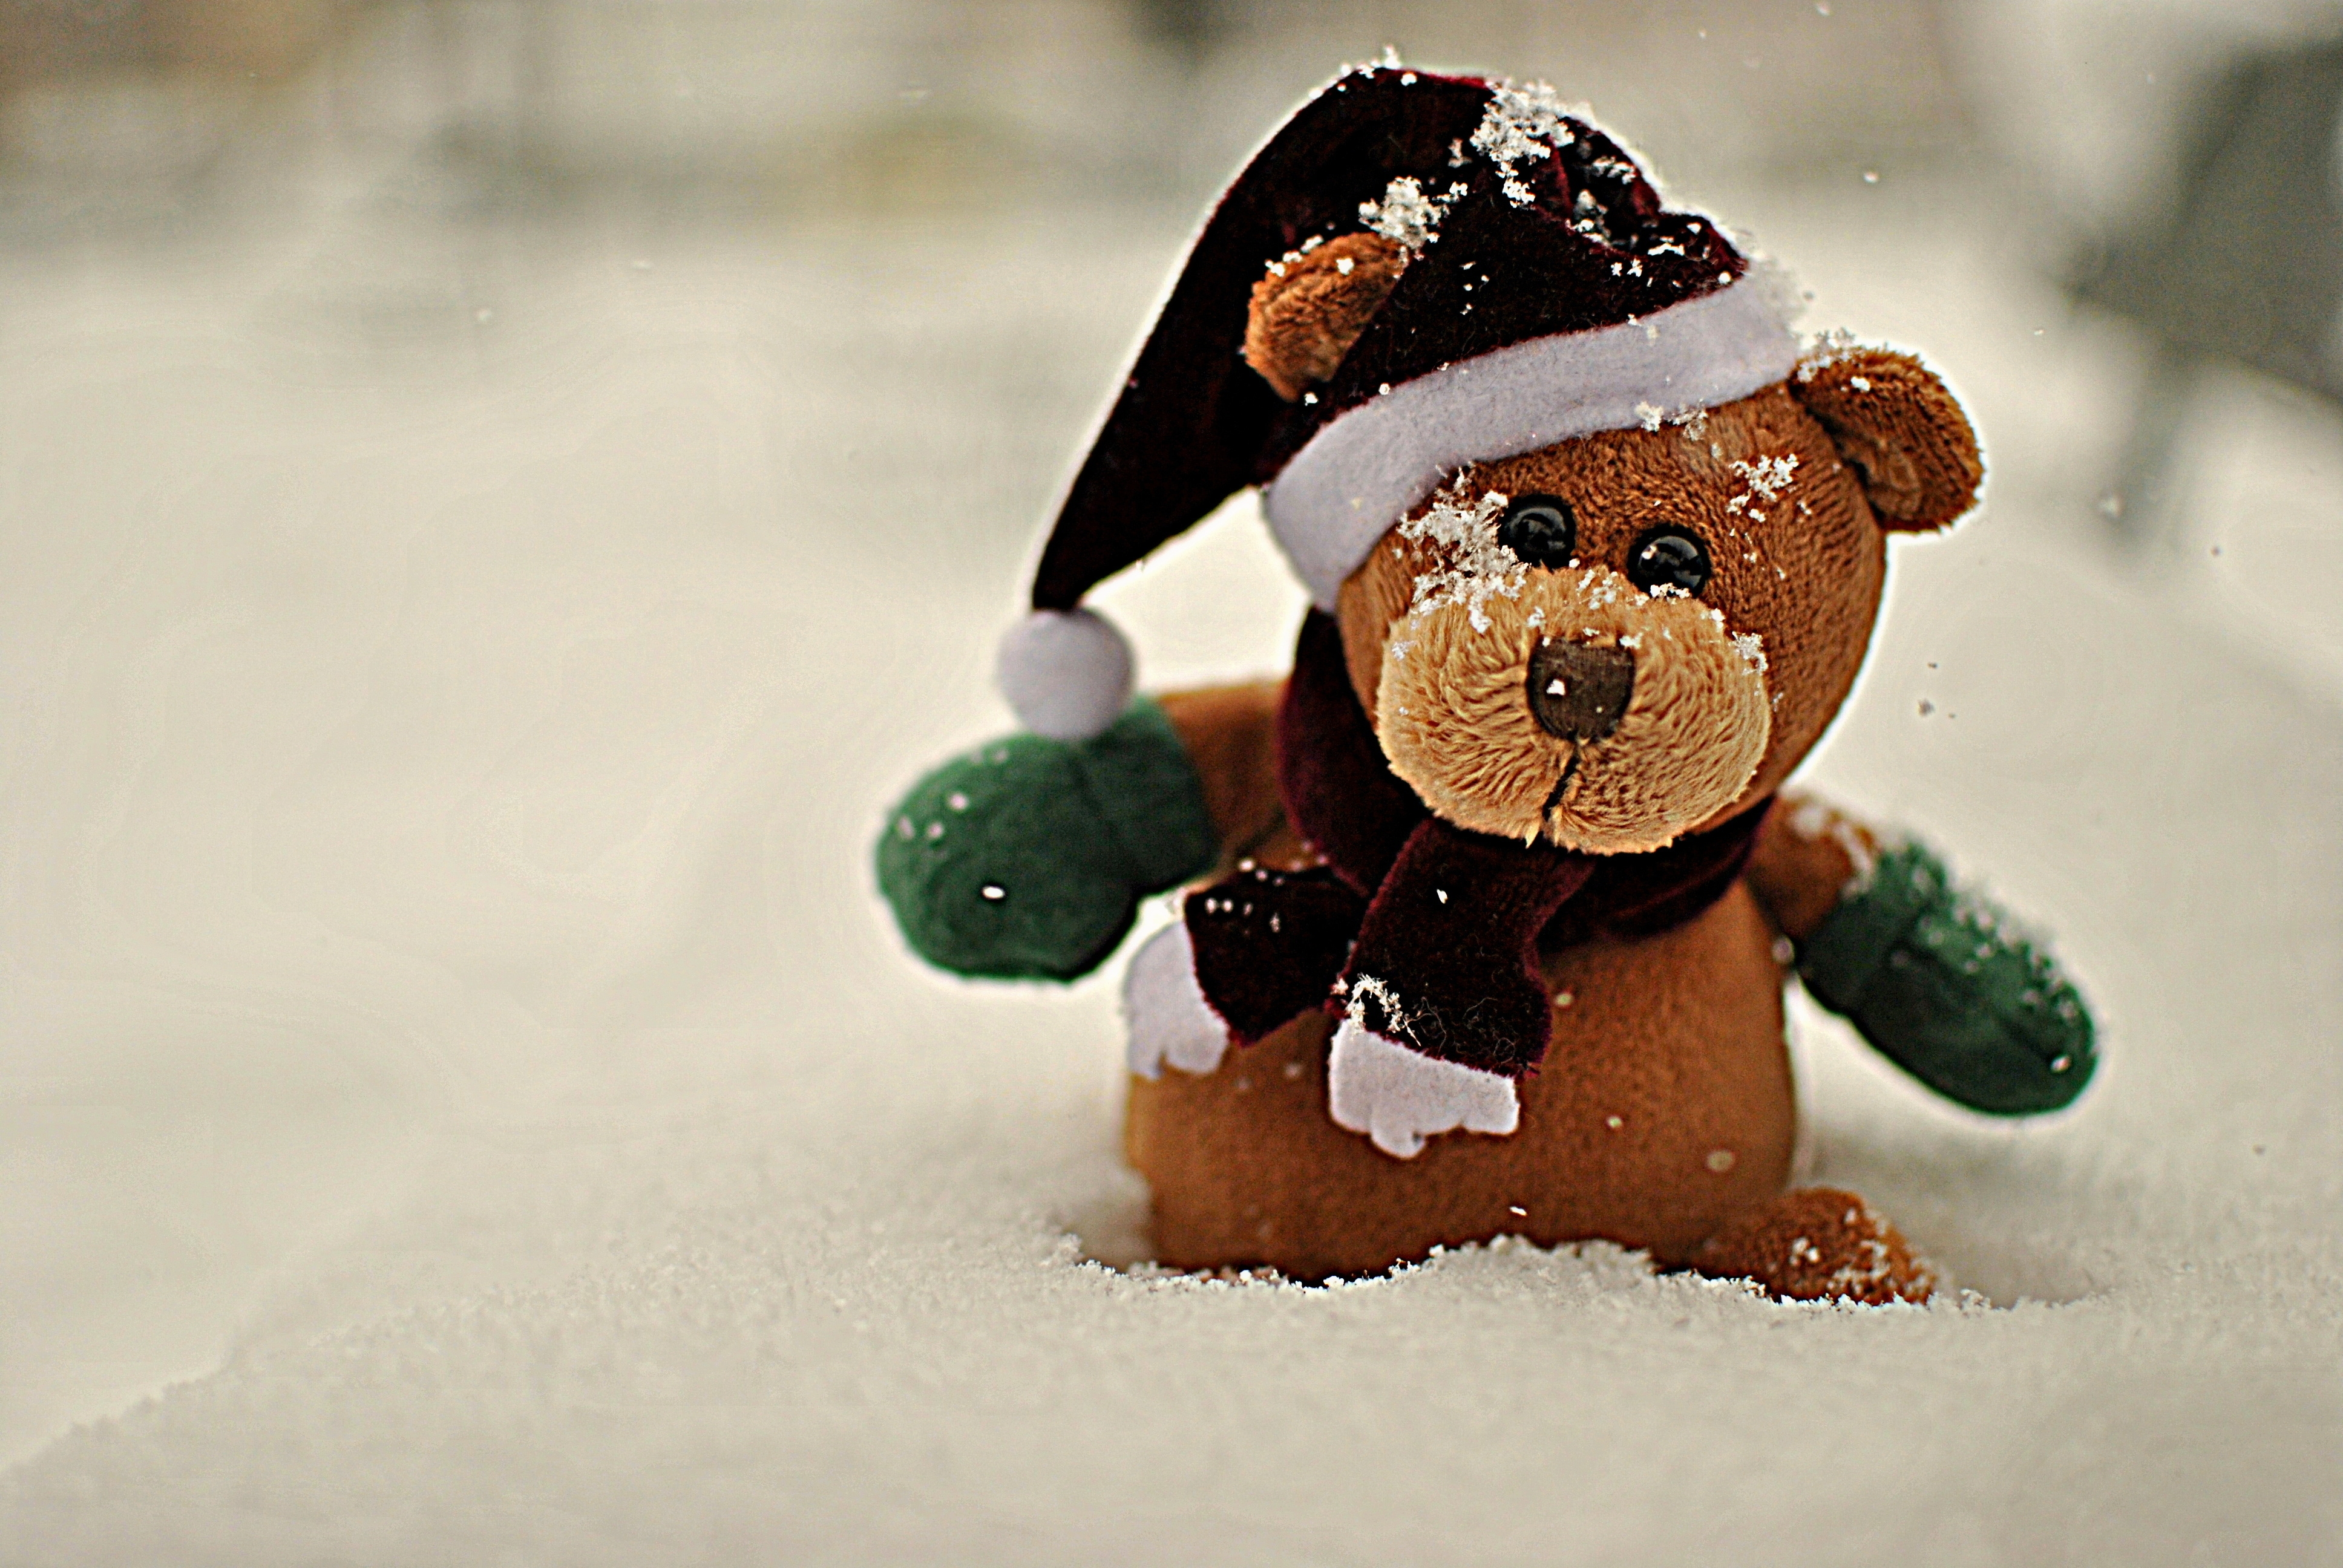 127155 Screensavers and Wallpapers Bear for phone. Download Snow, Miscellanea, Miscellaneous, Bear, Plush pictures for free